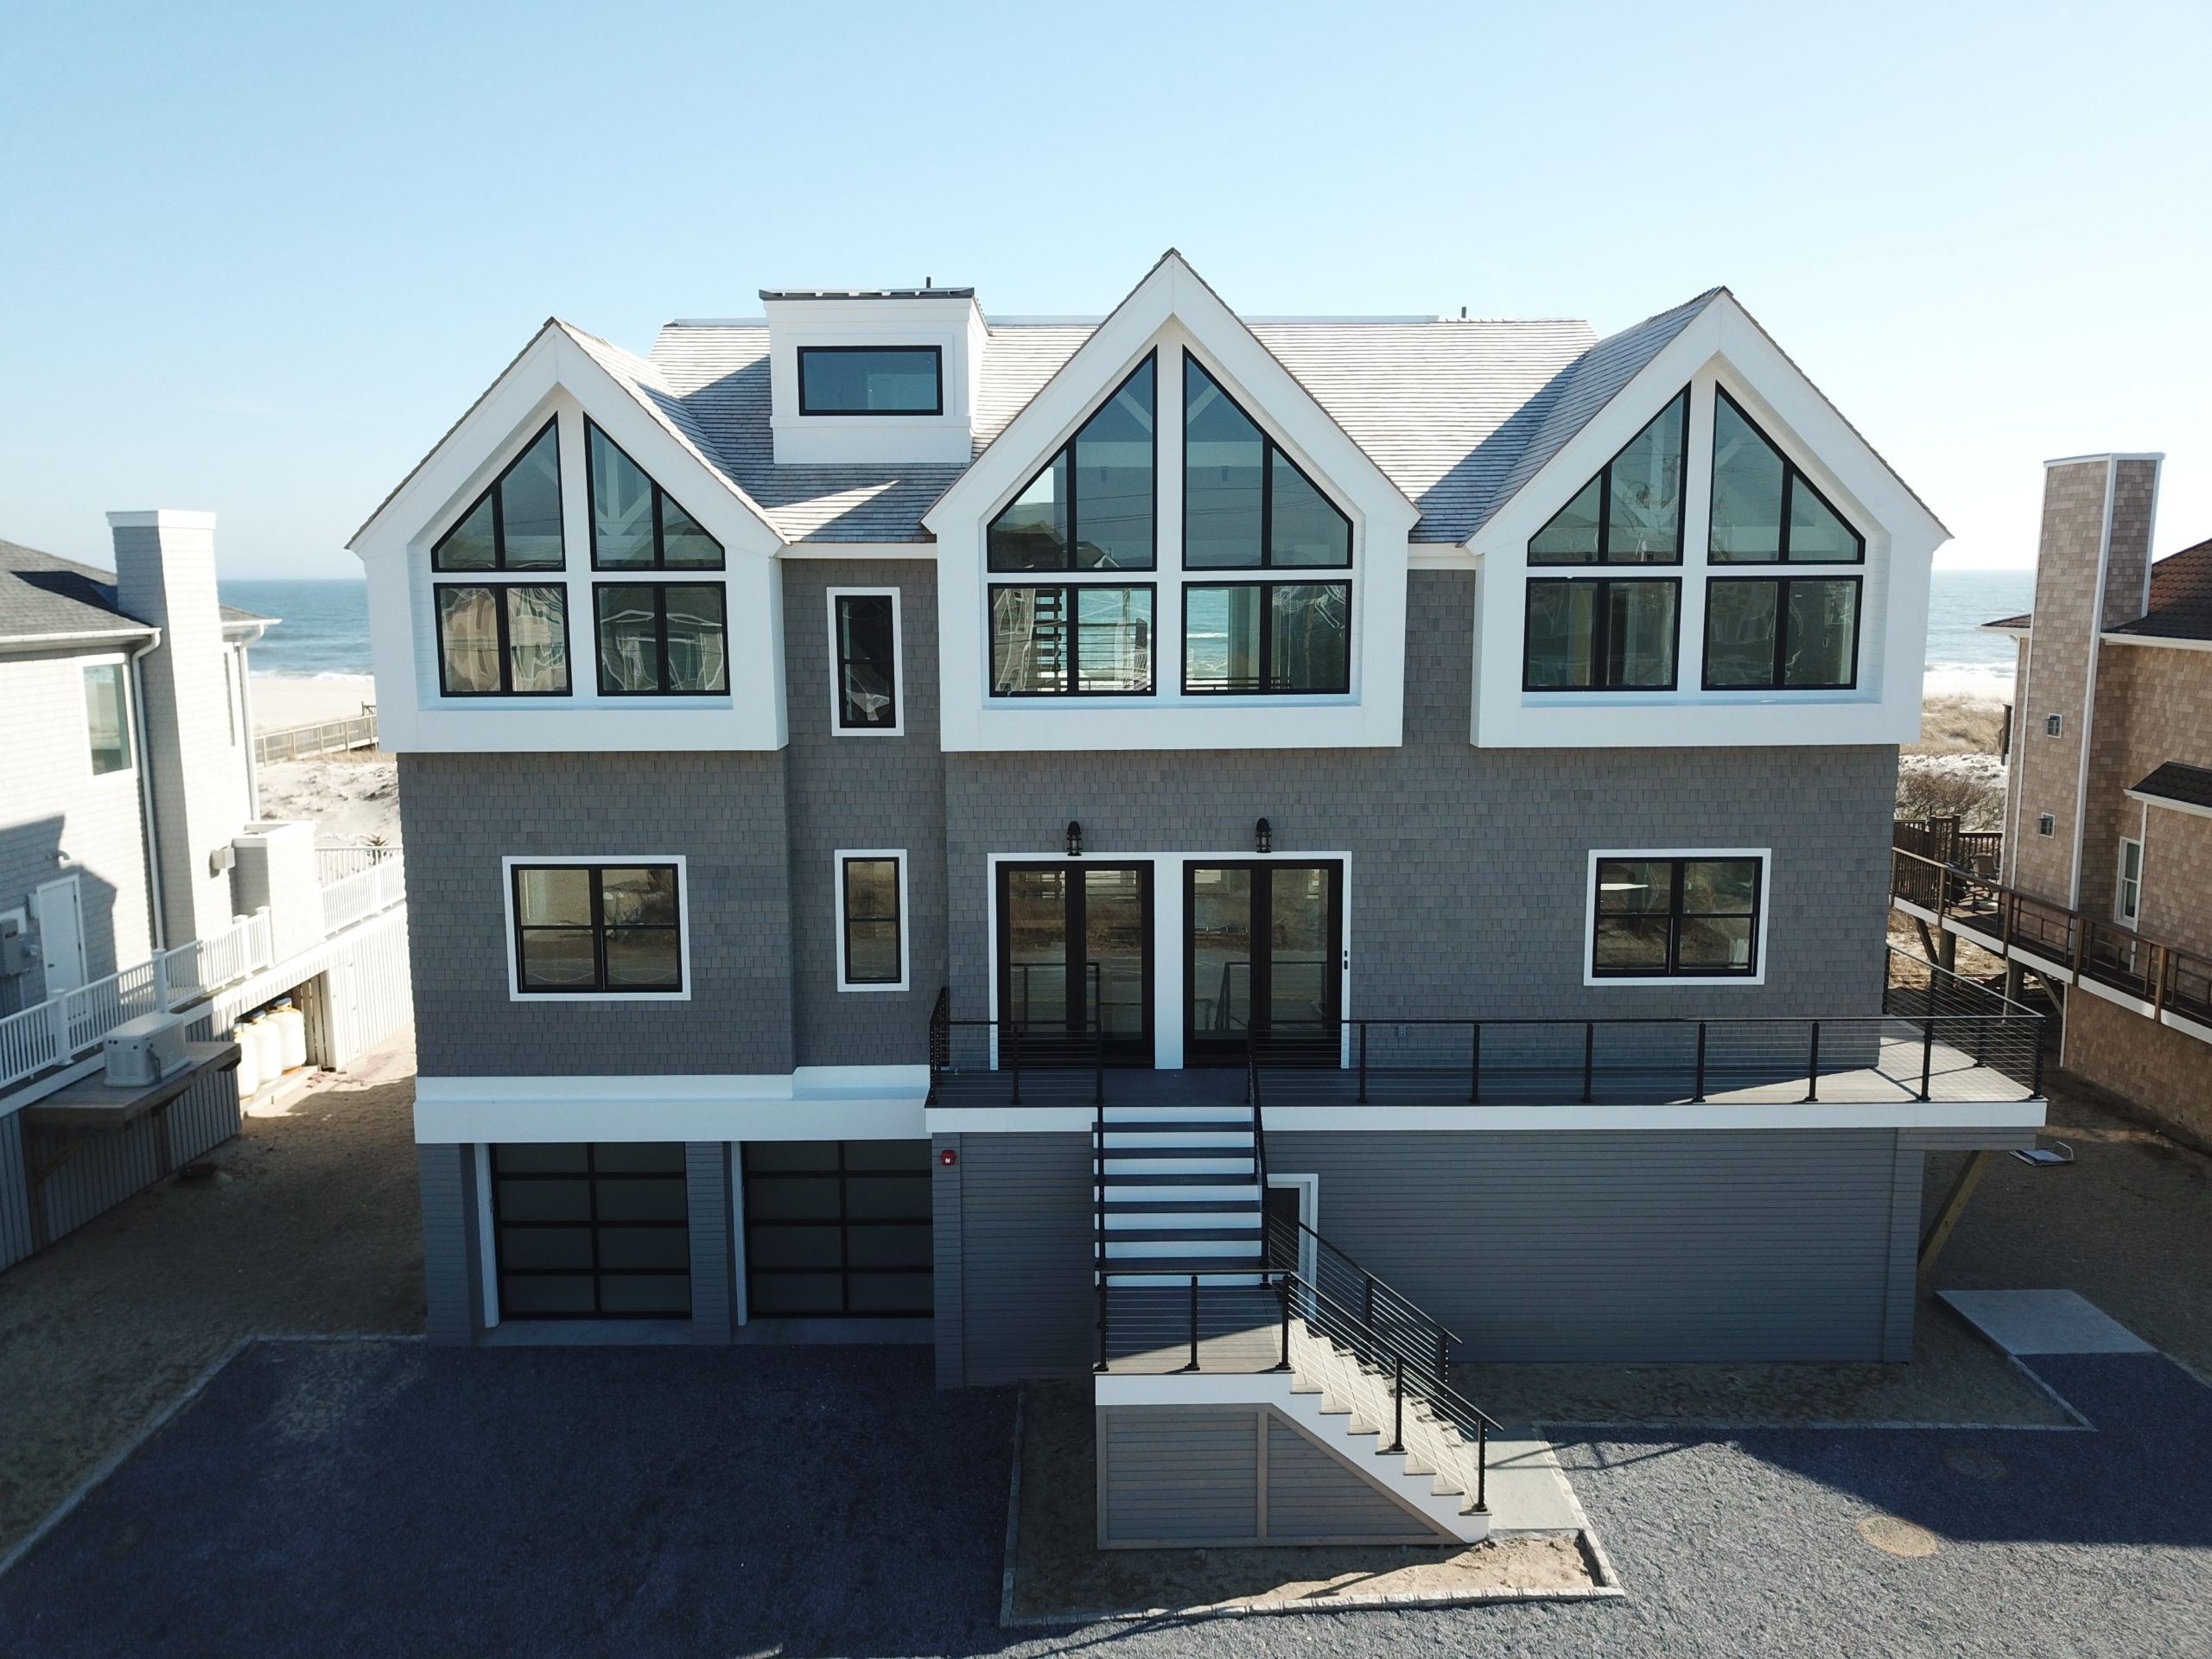 839 Dune Road, West Hampton Dunes.